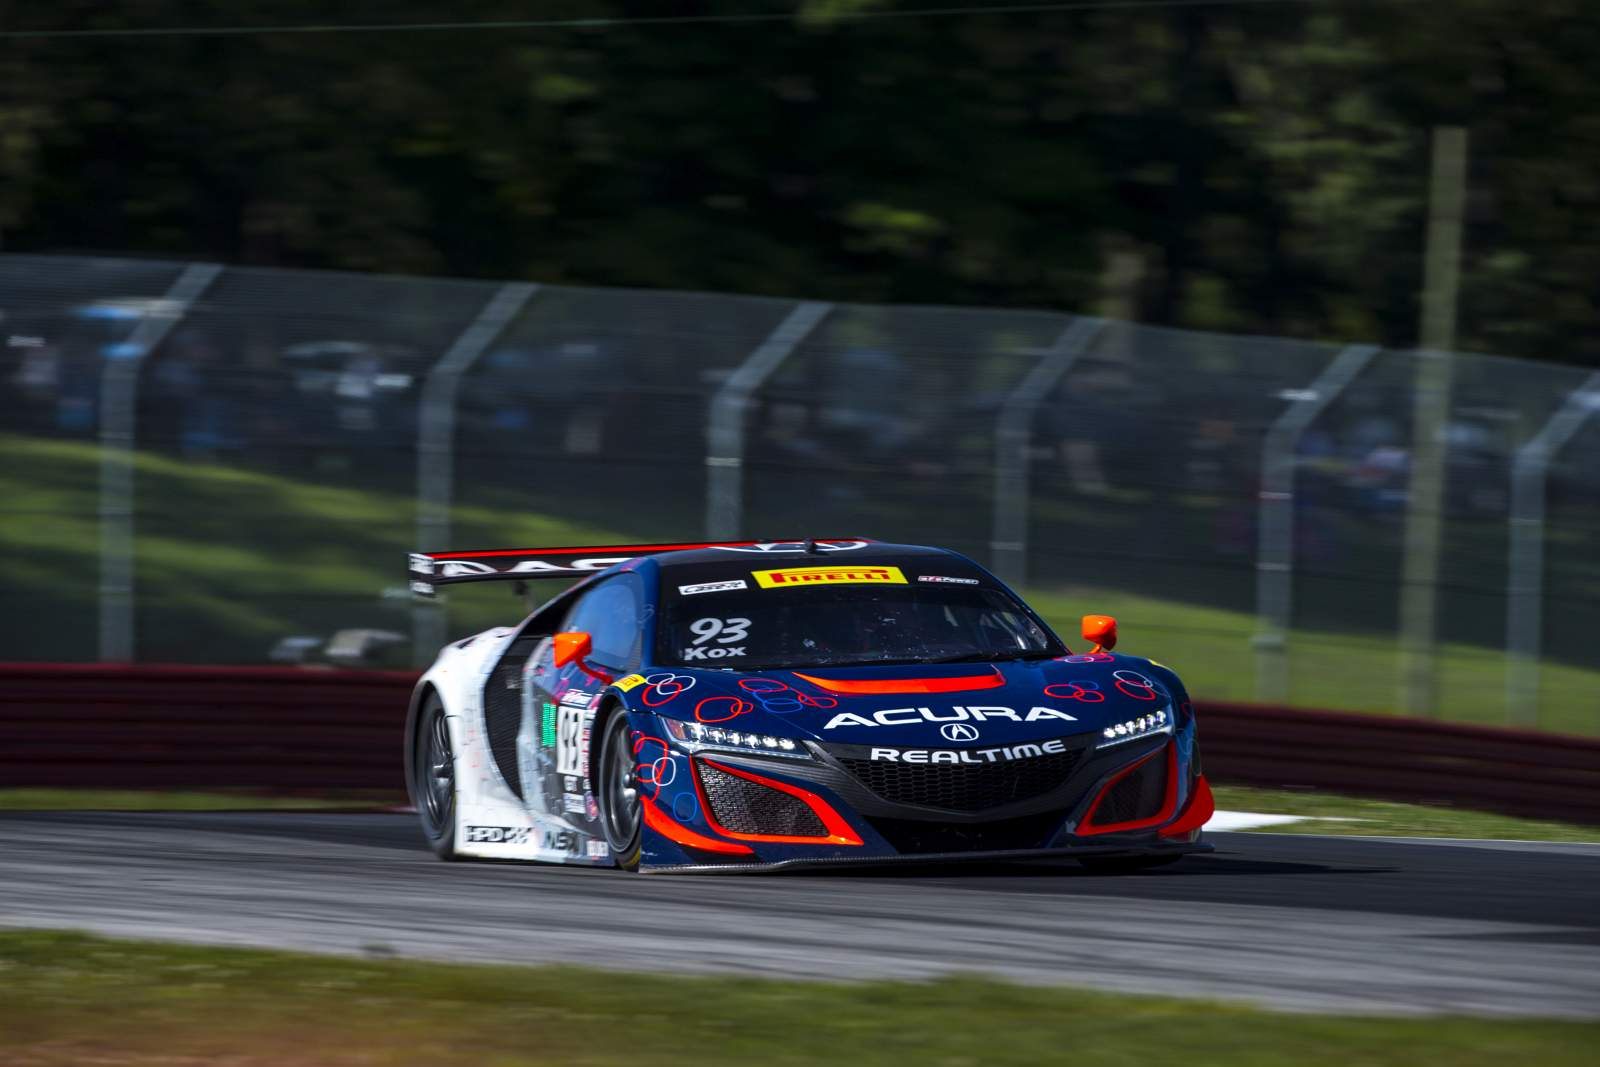 peter-kox-realtime-racing-pirelli-world-challenge-mid-ohio-50